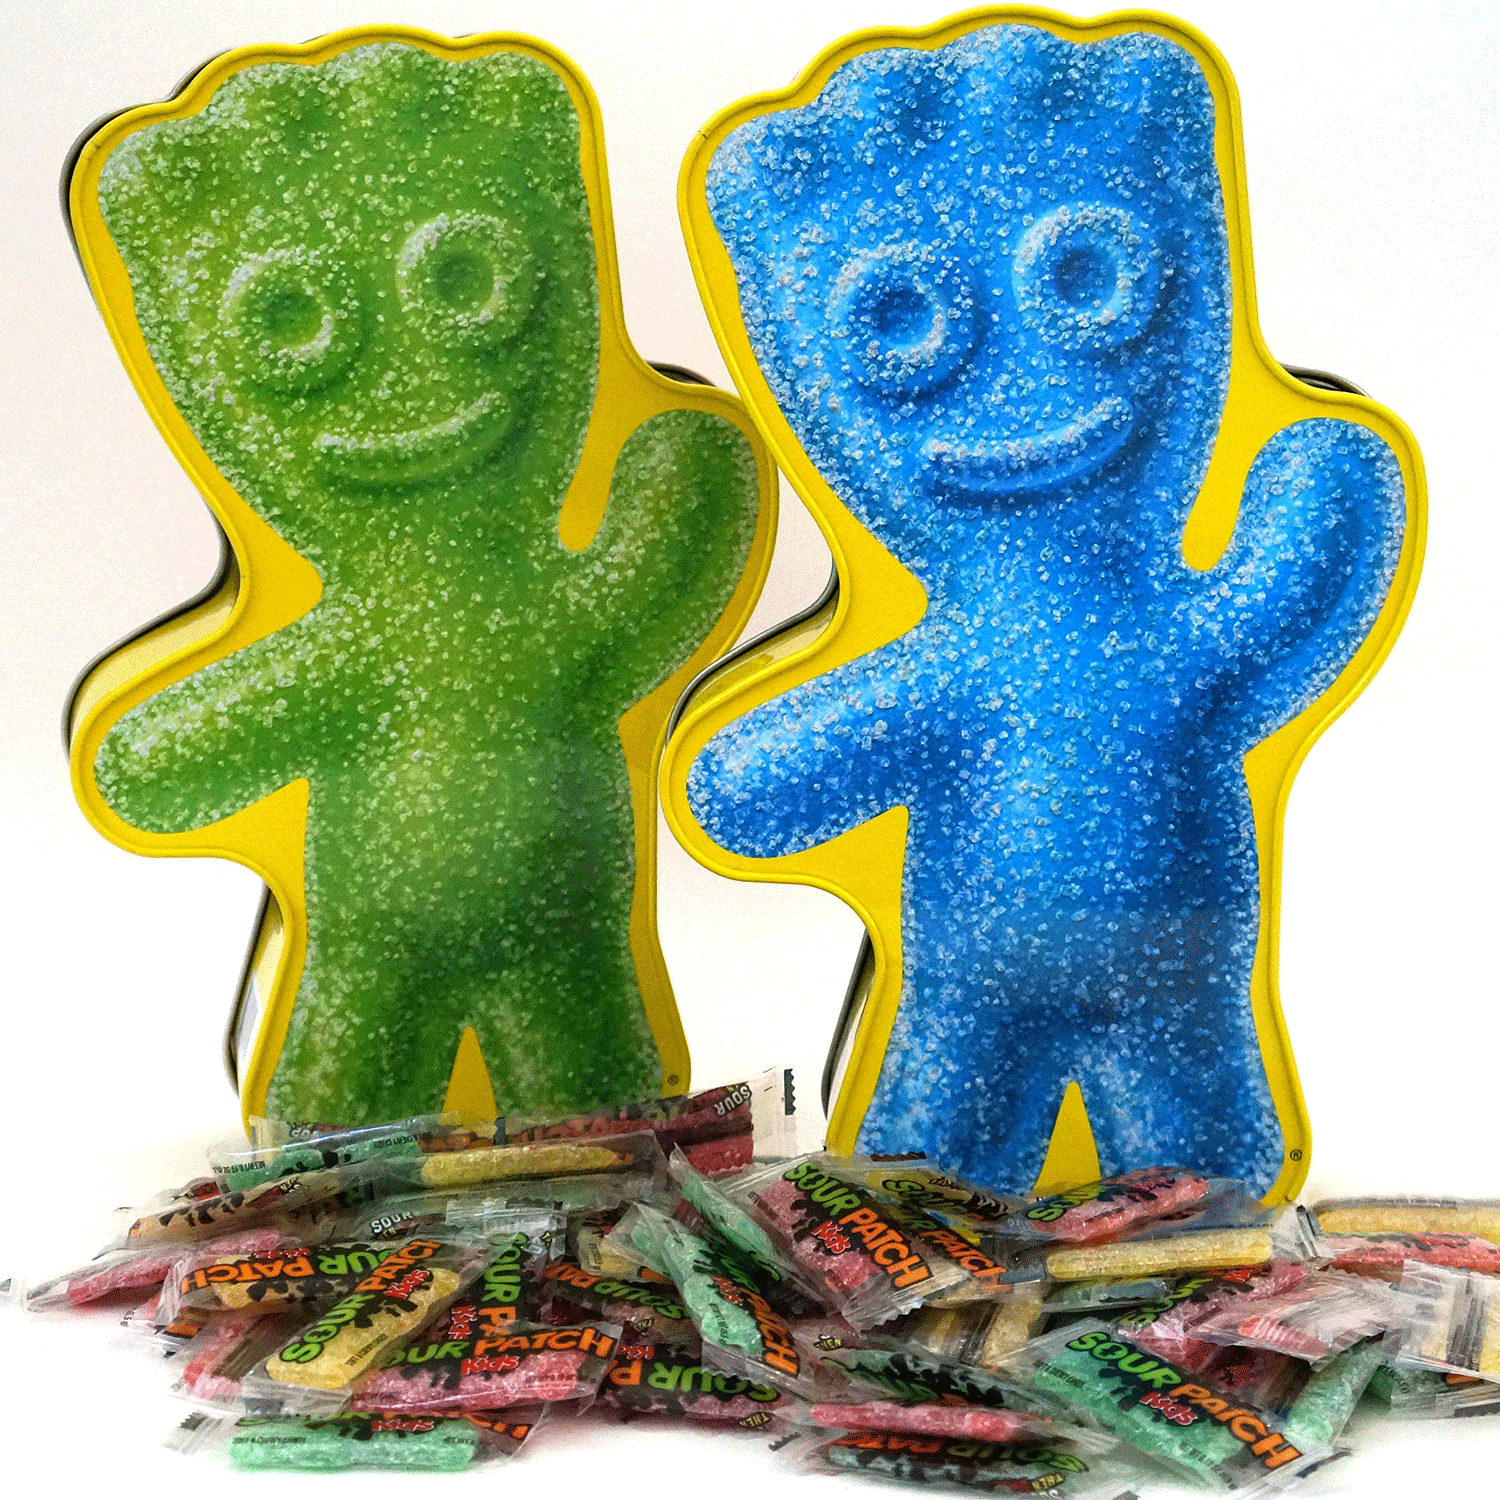 bfe4d395f IT'SUGAR | SOUR PATCH KIDS ® Limited Edition Character Tin | Candy ...